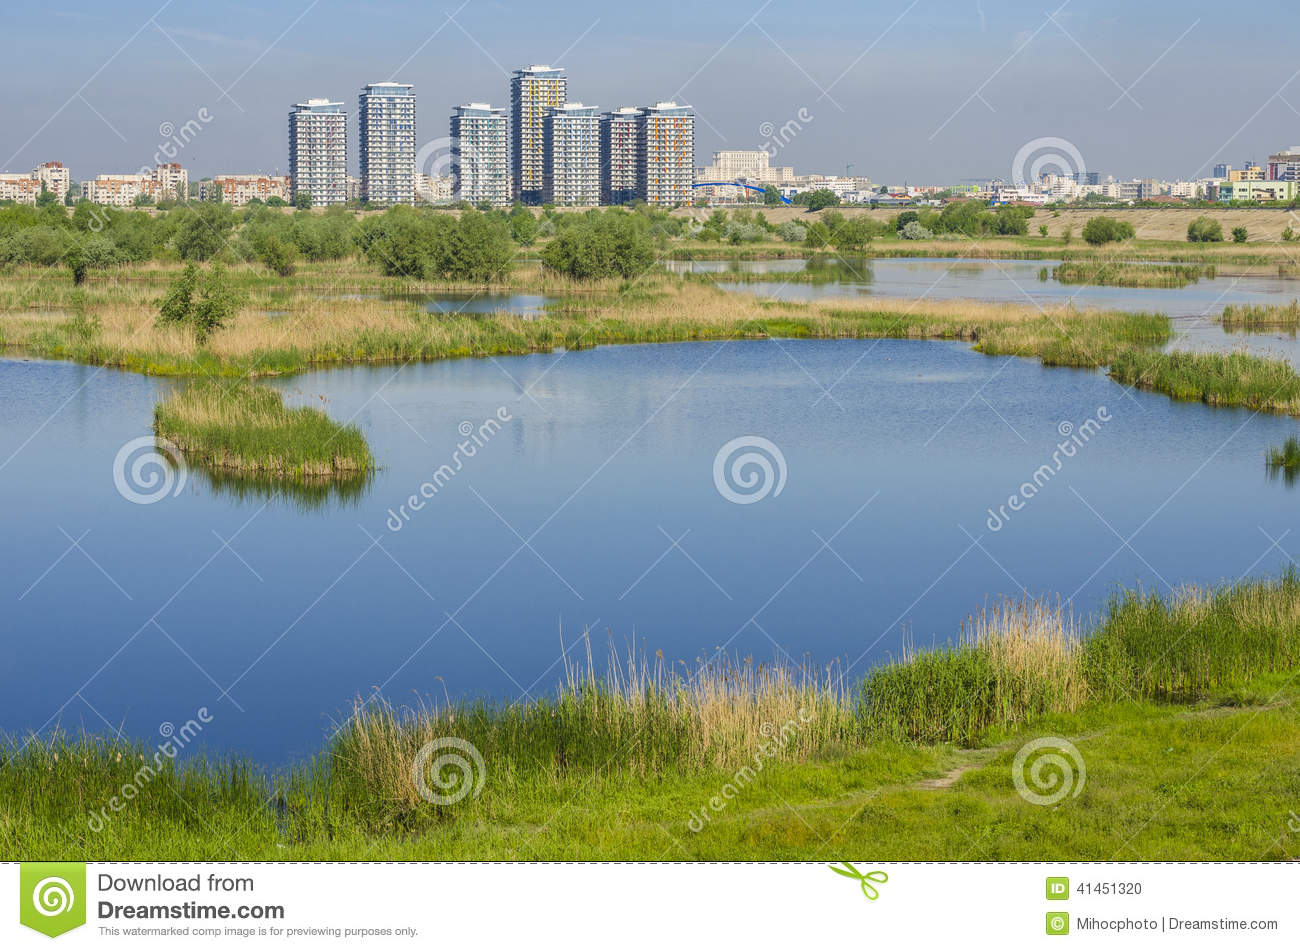 Download City Suburbs With Lake Ecosystem. Stock Photo - Image of lakeside, city: 41451320